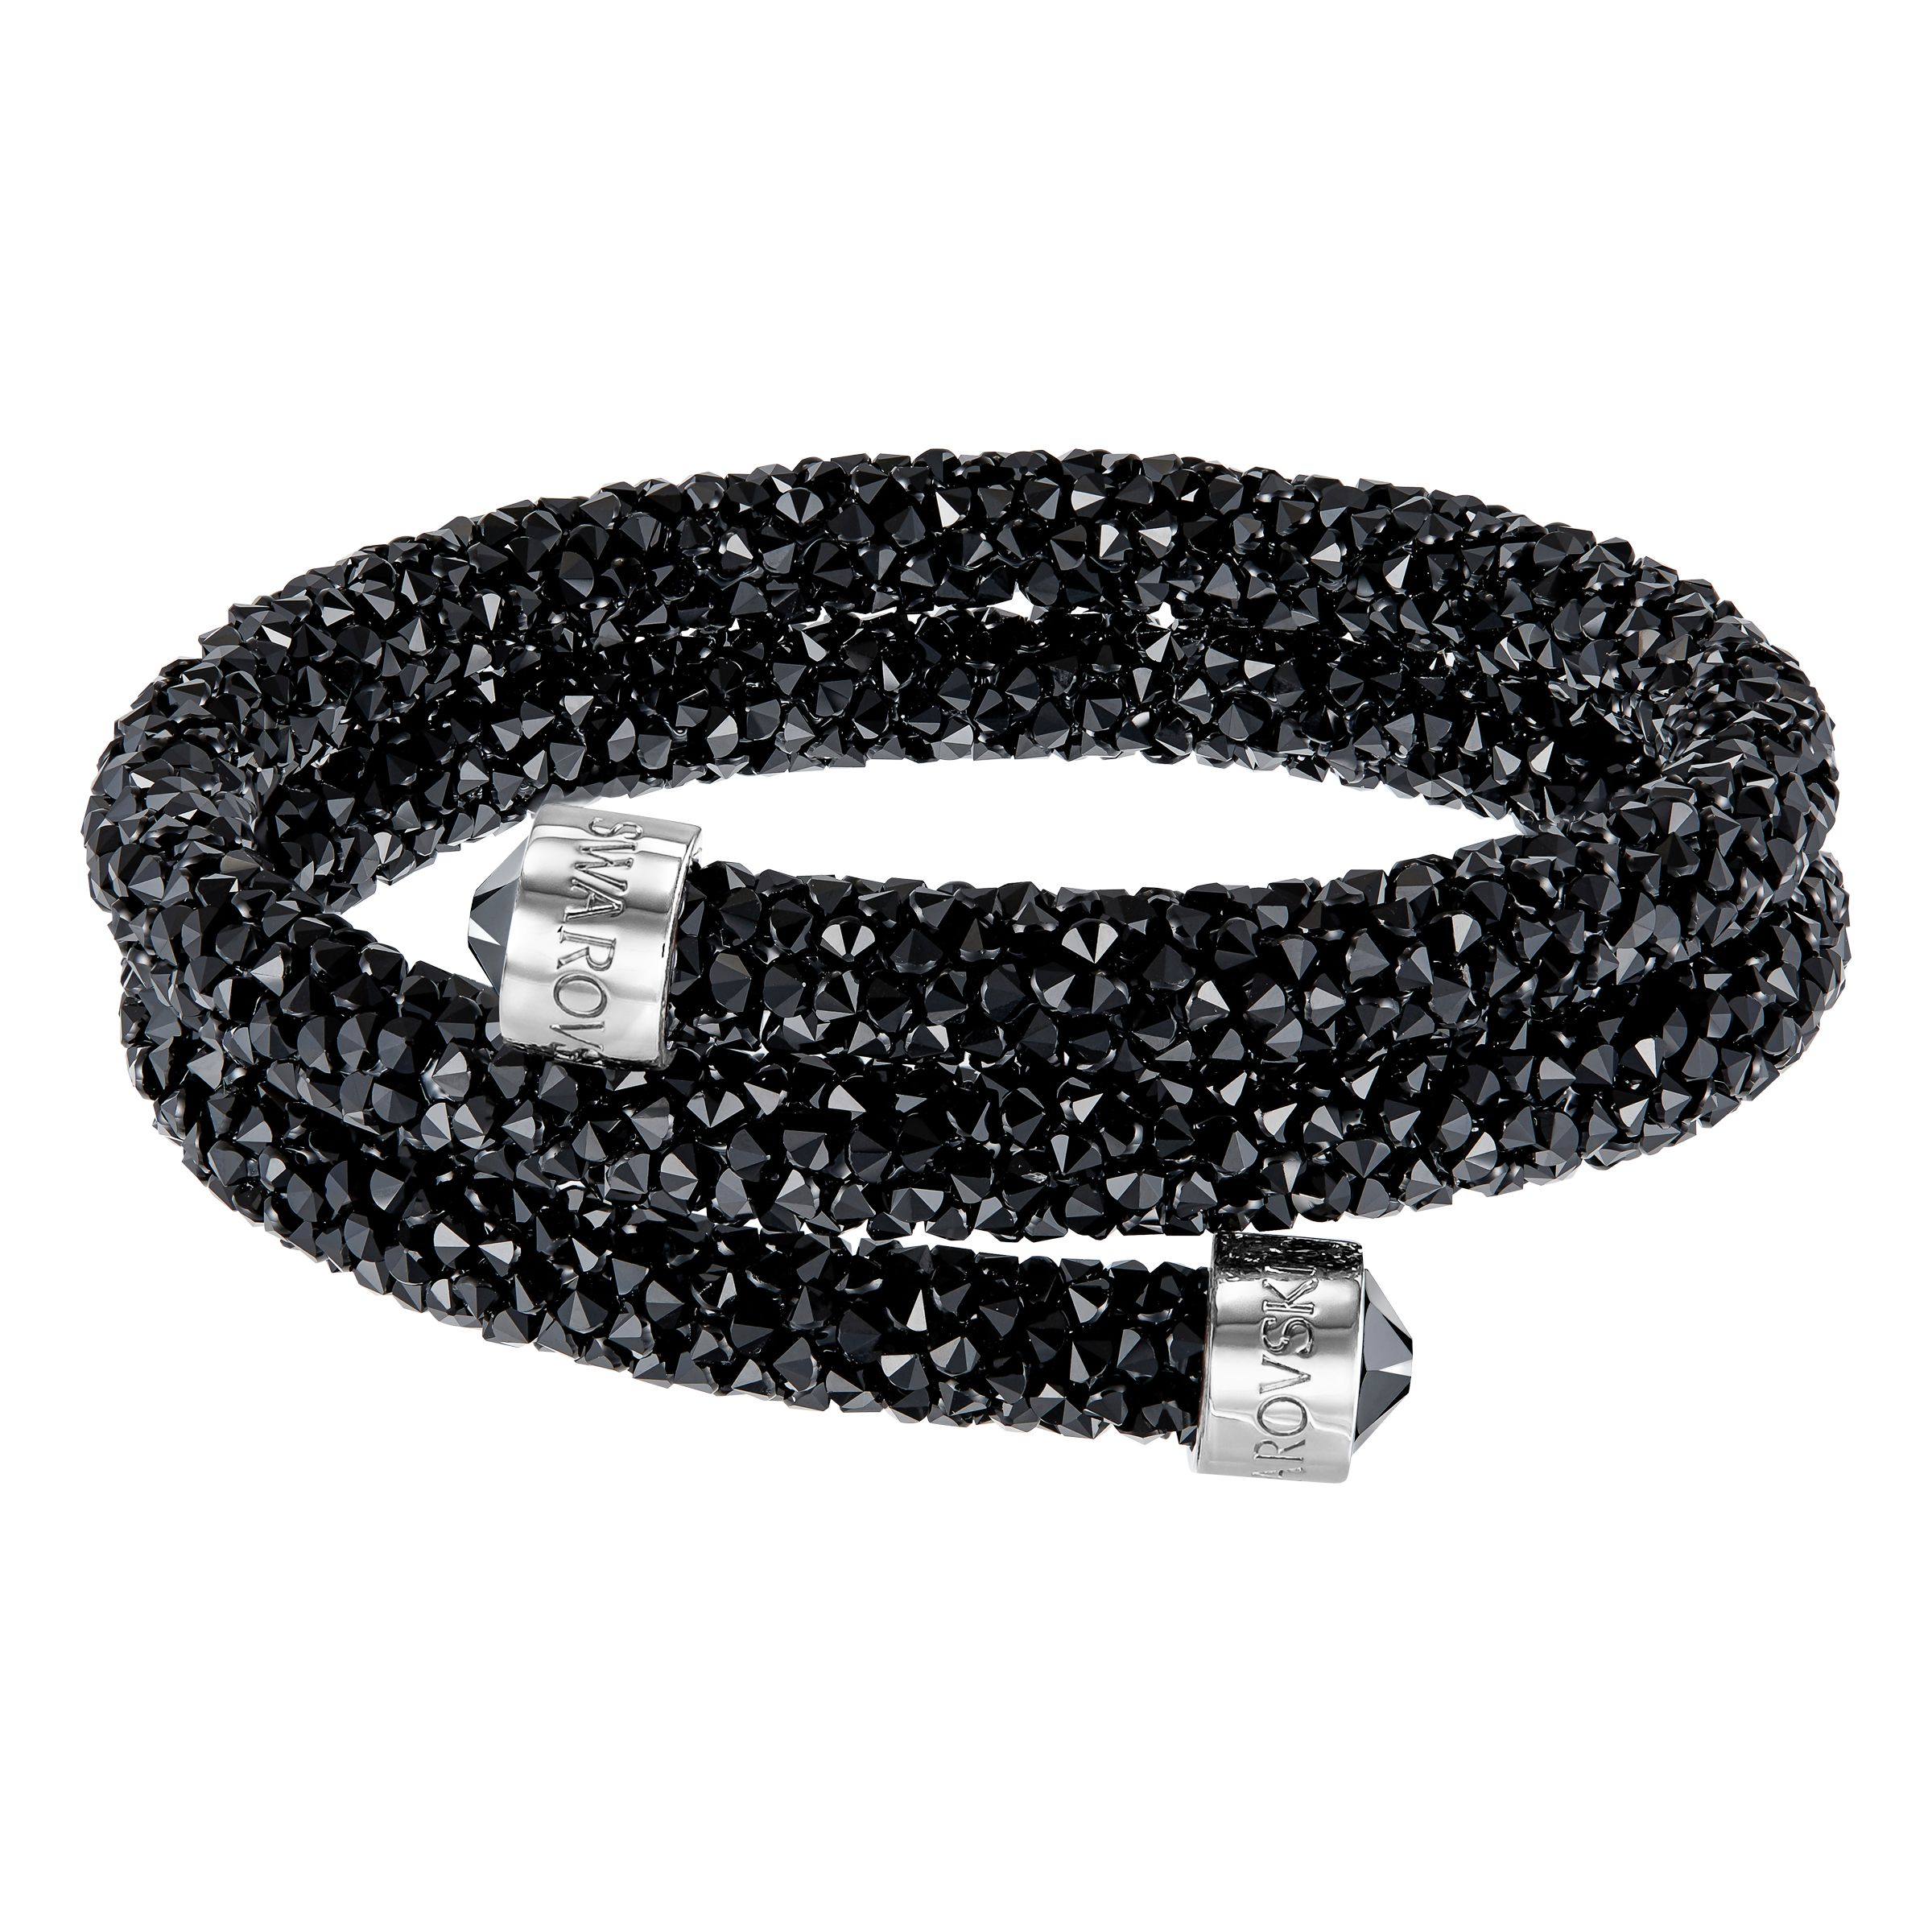 Swarovski Crystaldust bangle, Black